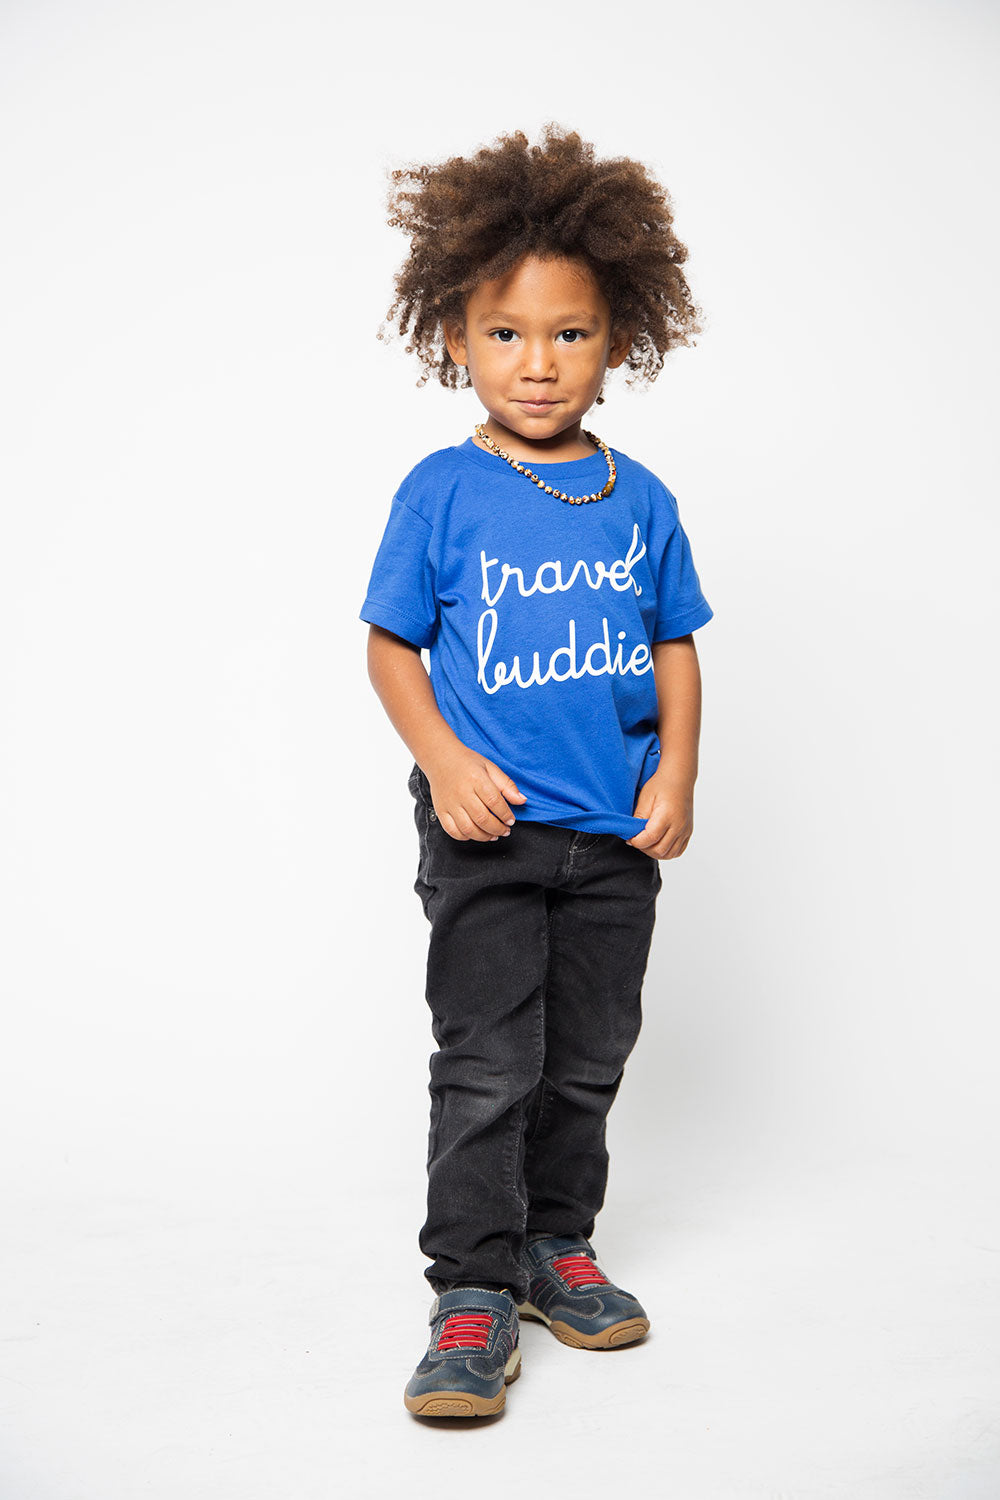 Travel Buddies Kids Shirt in Blue - Trunk Series, LLC